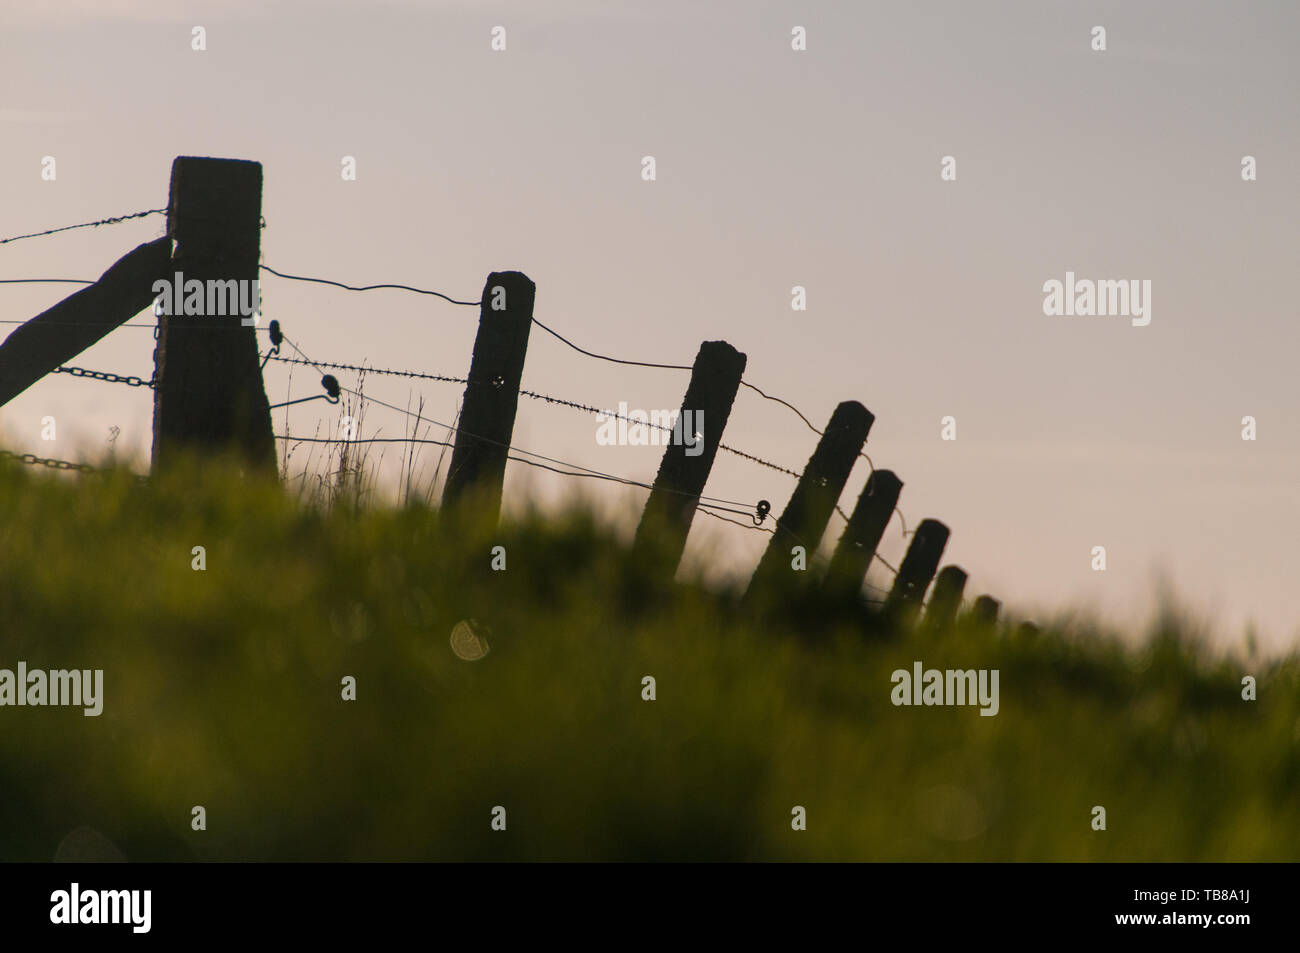 Barbed wire fence in belgium - Stock Image